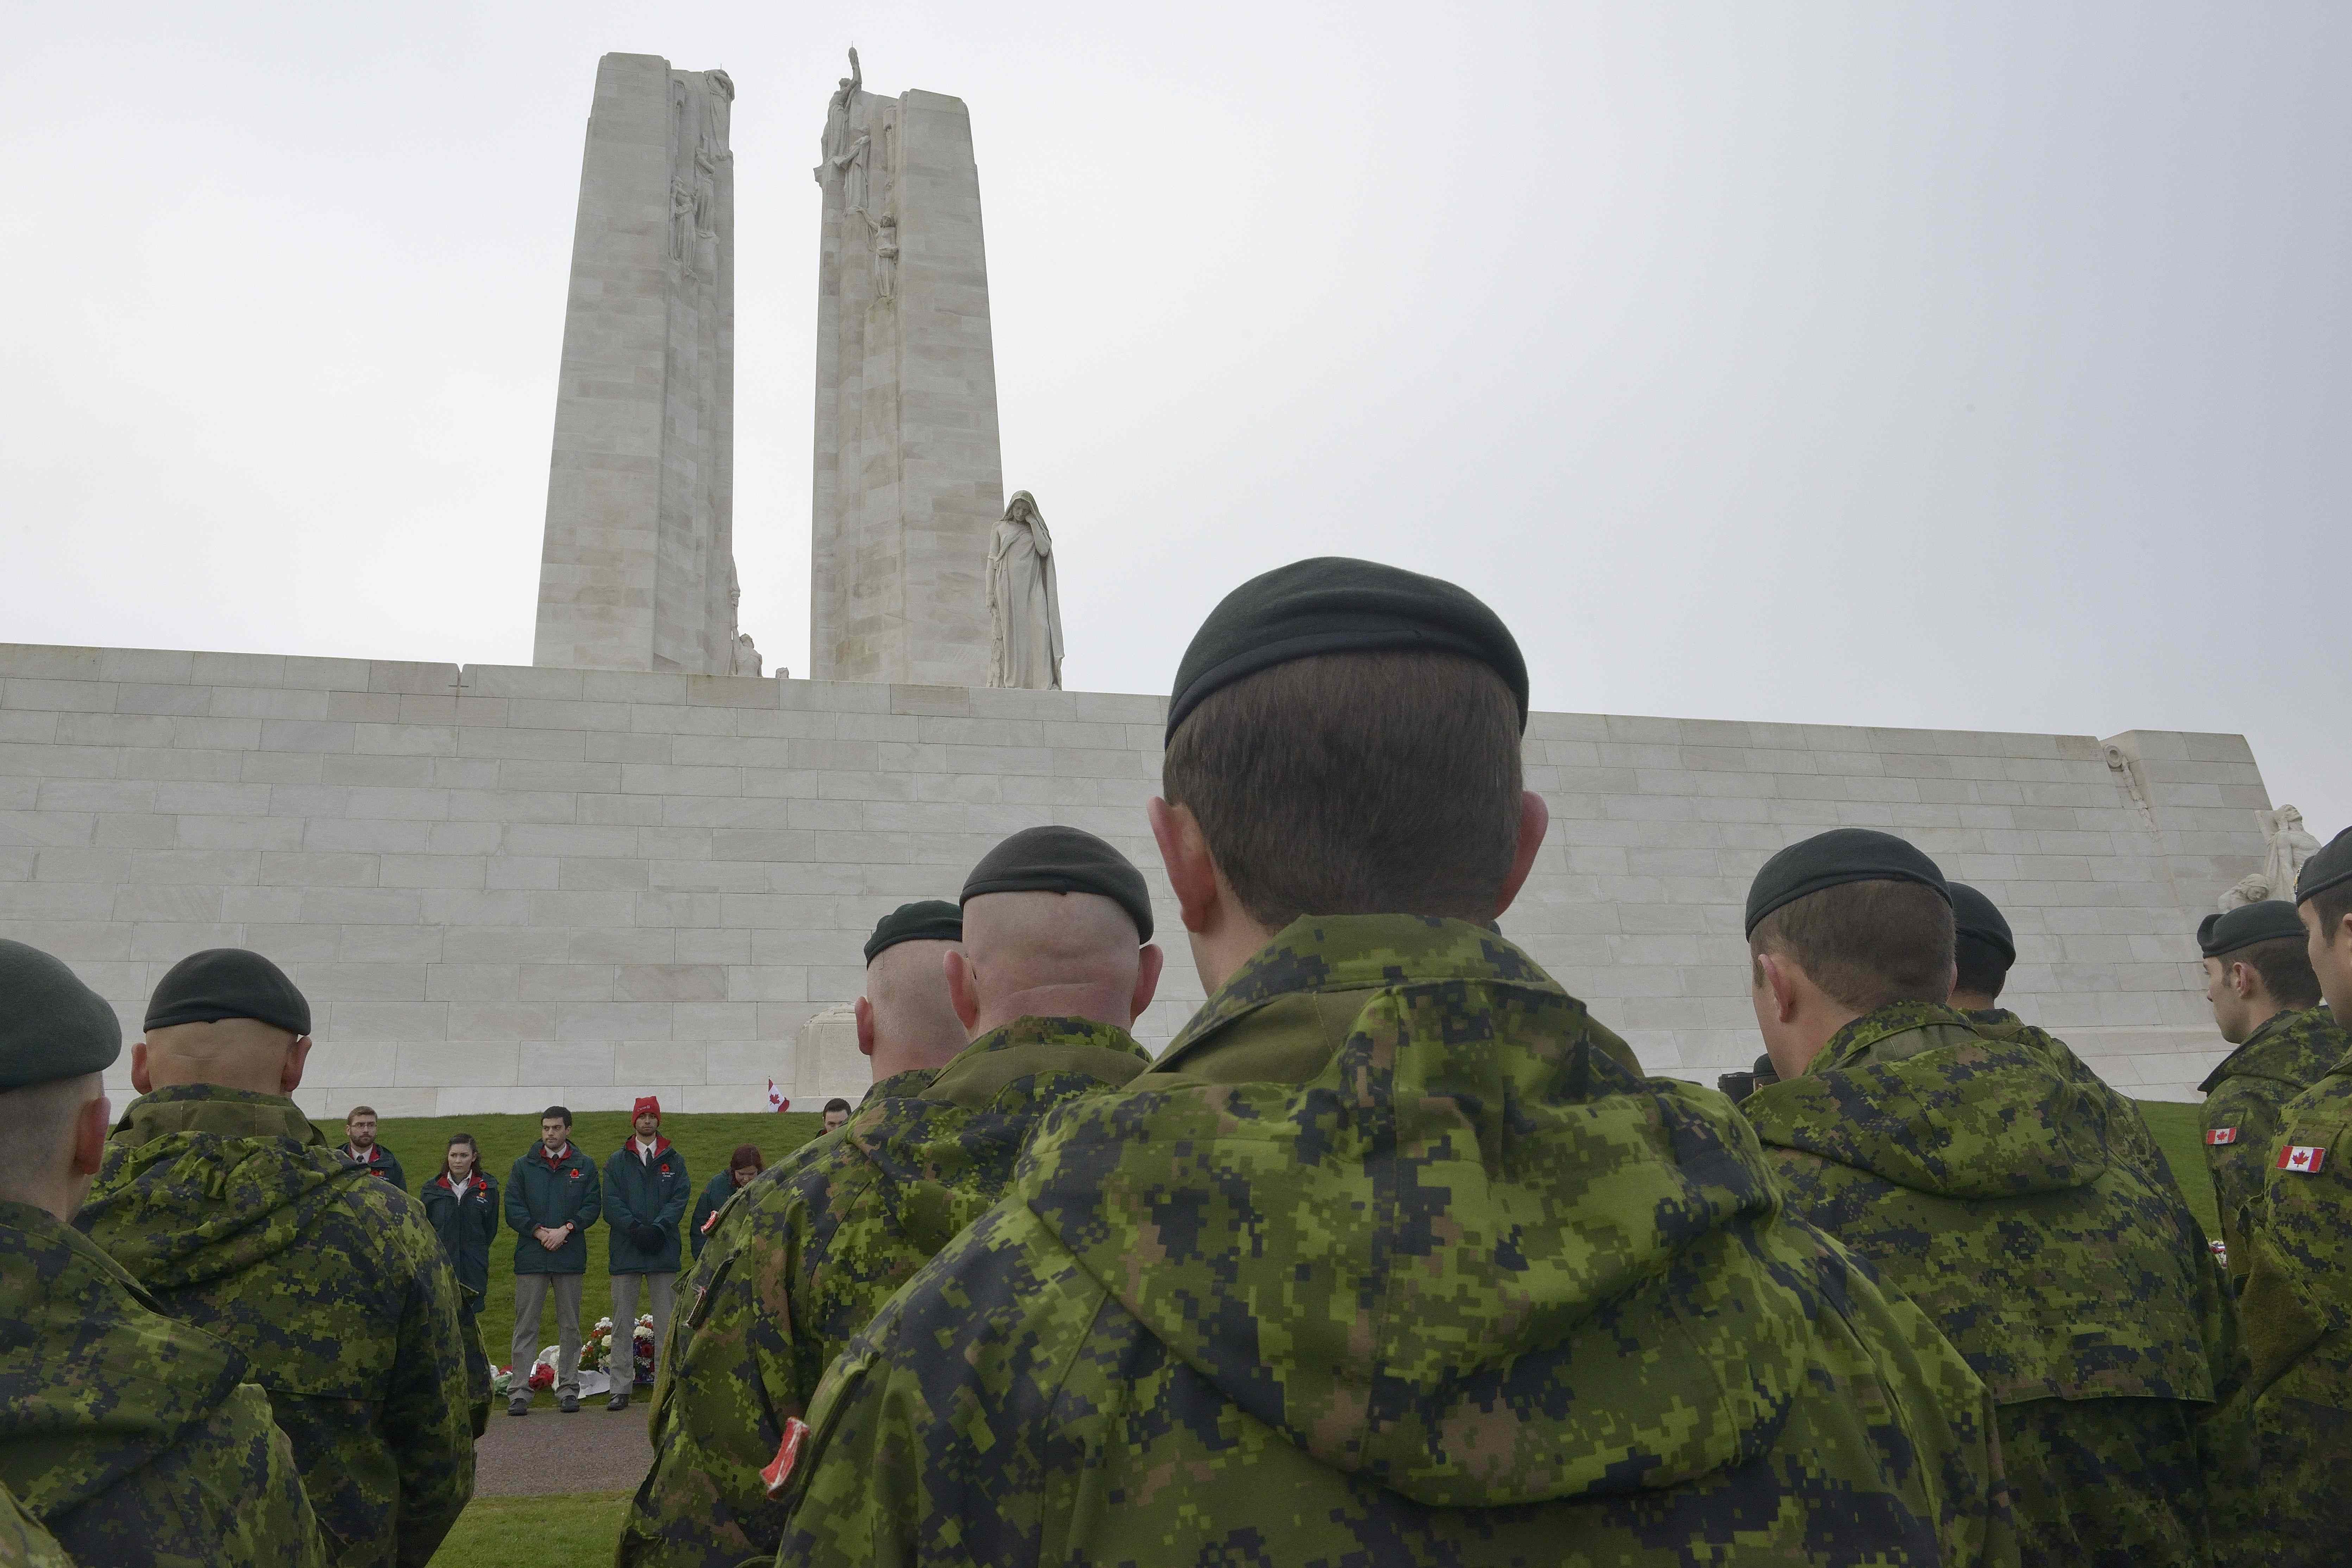 Canadian Armed Forces members deployed on Operation Reassurance take part in a Remembrance Day ceremony at Vimy Ridge, France, on November 11, 2014. PHOTO: Land Task Force - Operation Reassurance, DND